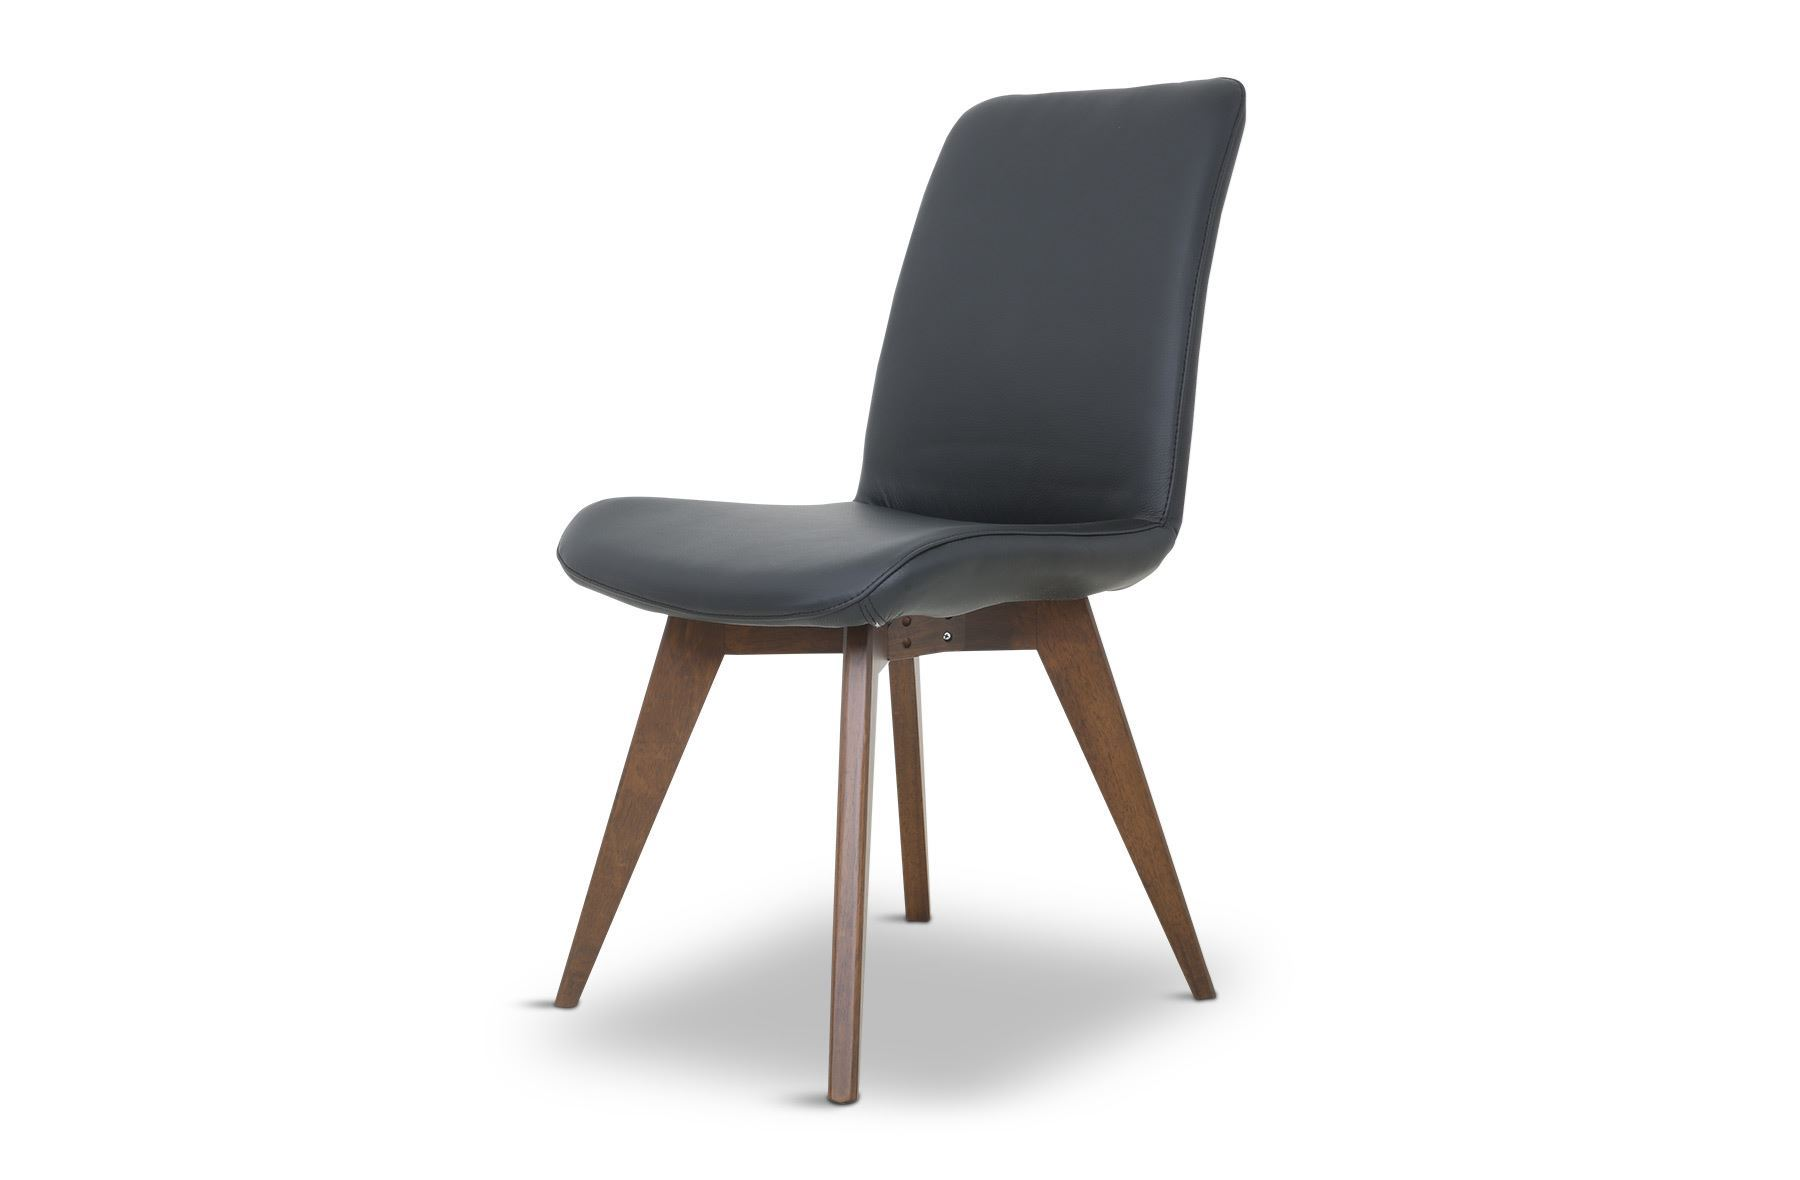 tan leather dining chairs melbourne chair yoga certification ontario rice furniture hilton black